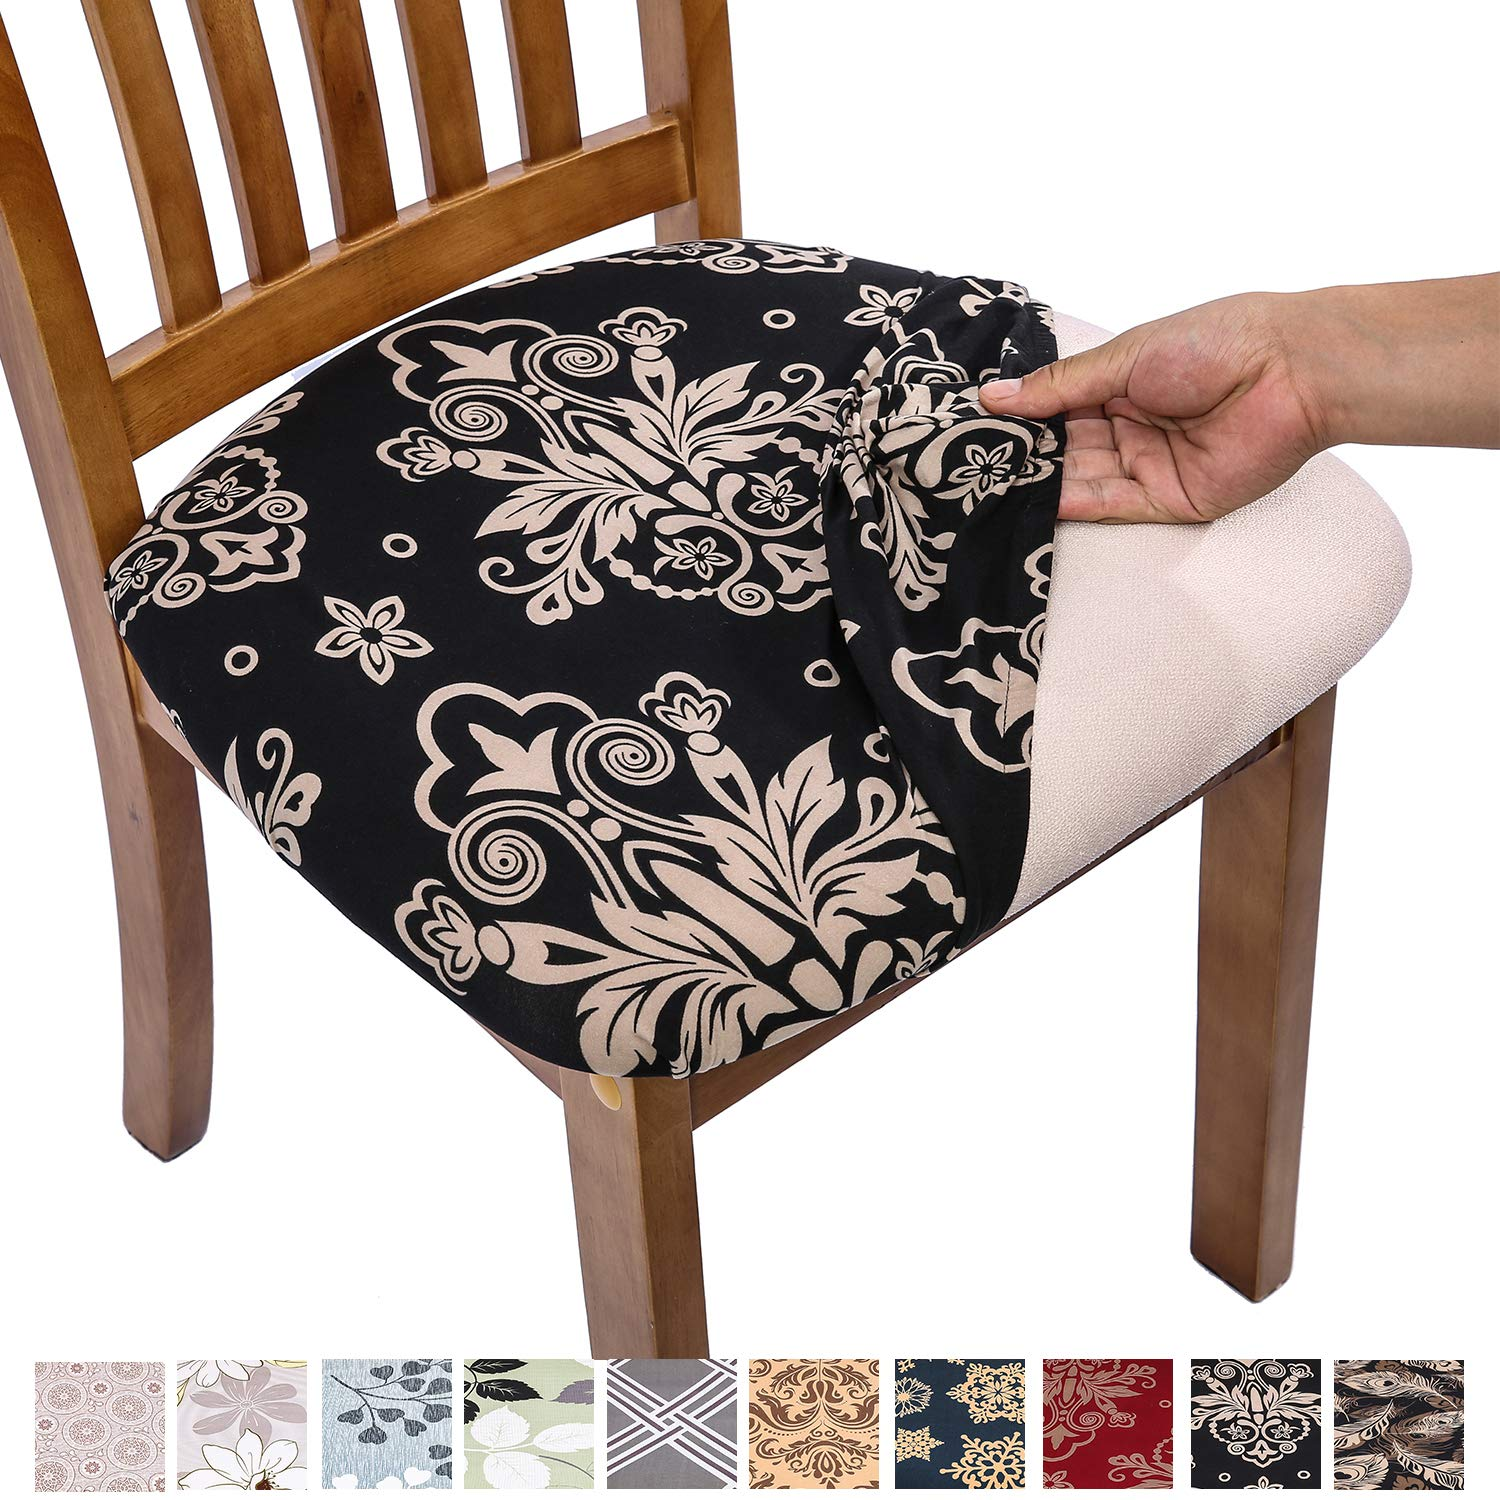 Super Comqualife Stretch Printed Dining Chair Seat Covers Removable Washable Anti Dust Upholstered Chair Seat Cover For Dining Room Kitchen Office Set Caraccident5 Cool Chair Designs And Ideas Caraccident5Info